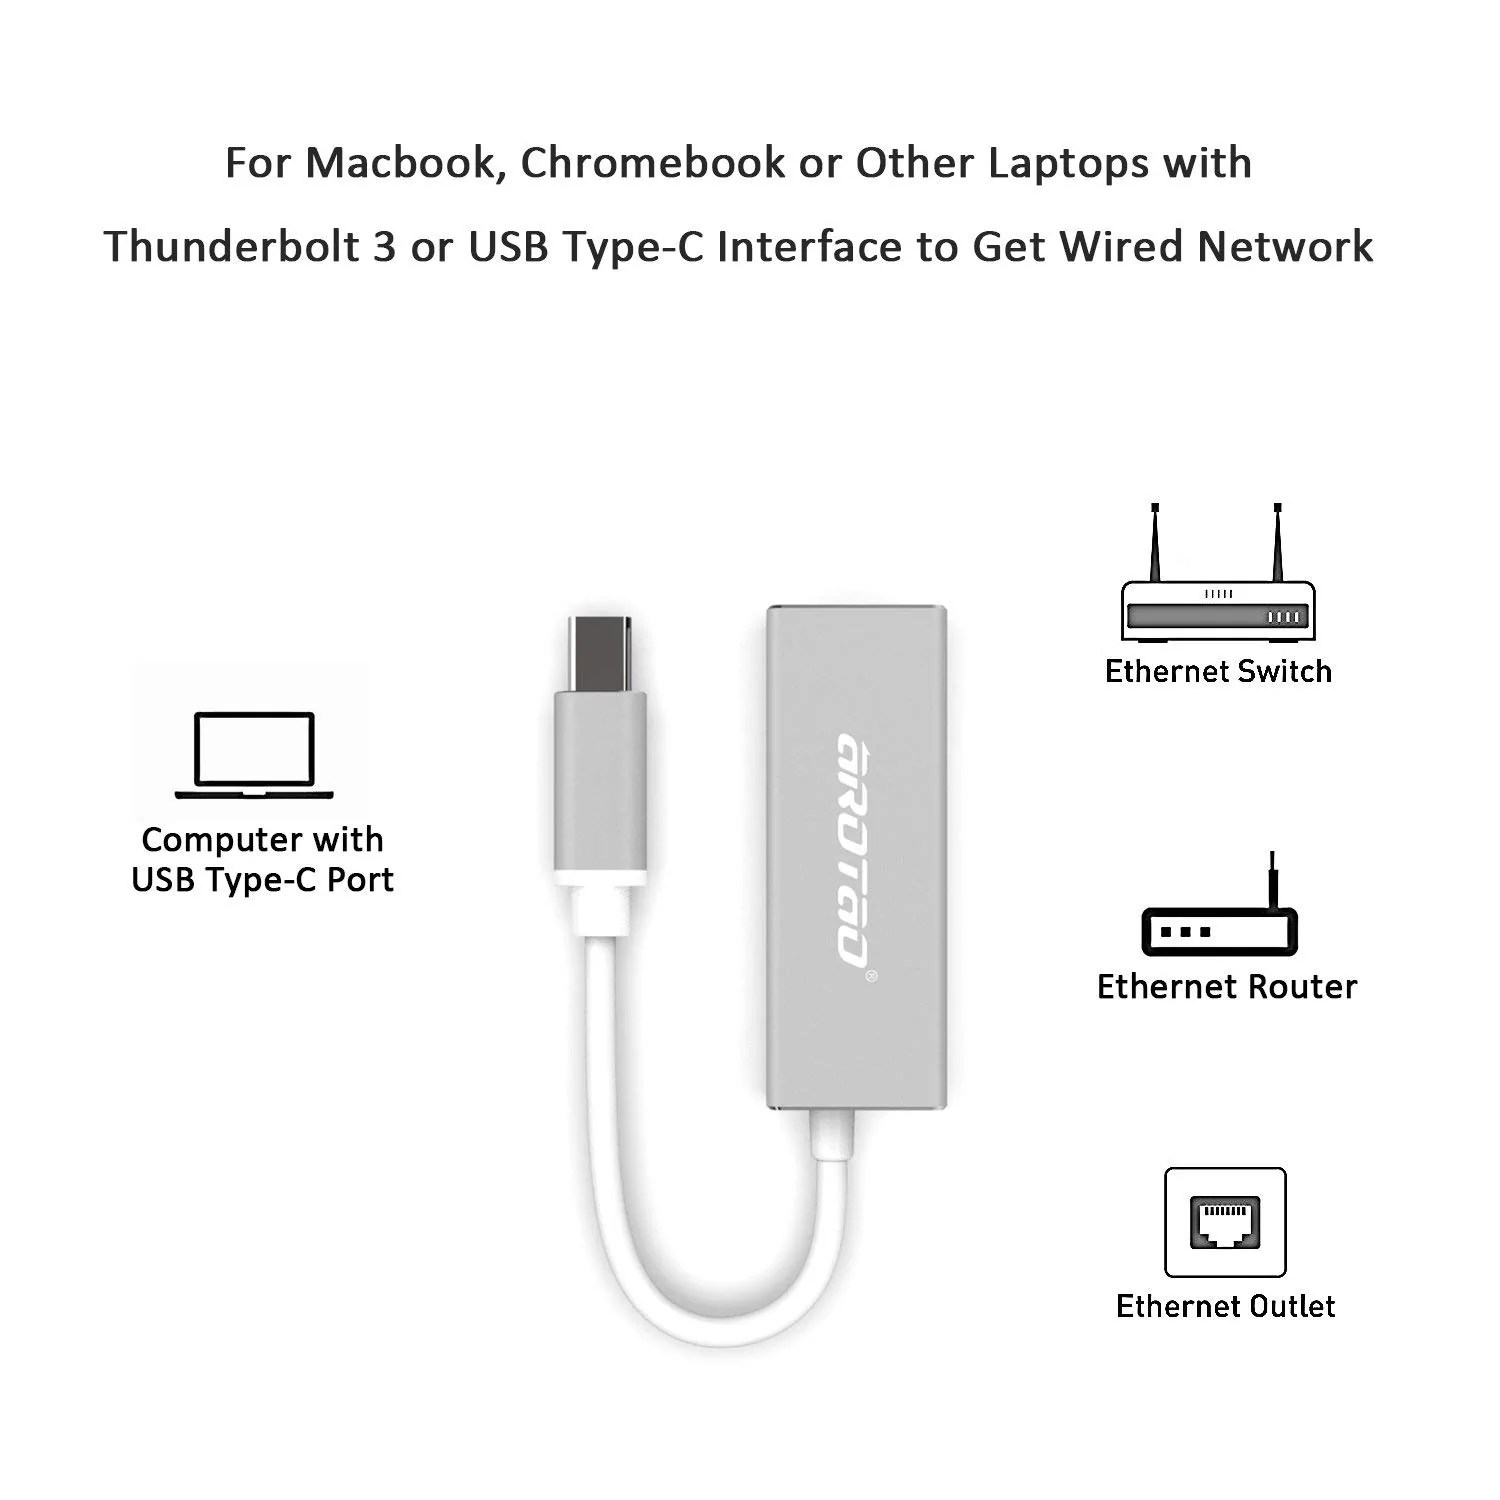 rj45 to thunderbolt duncan designed wiring diagram arotao usb c ethernet adapter 3 1 type load image into gallery viewer